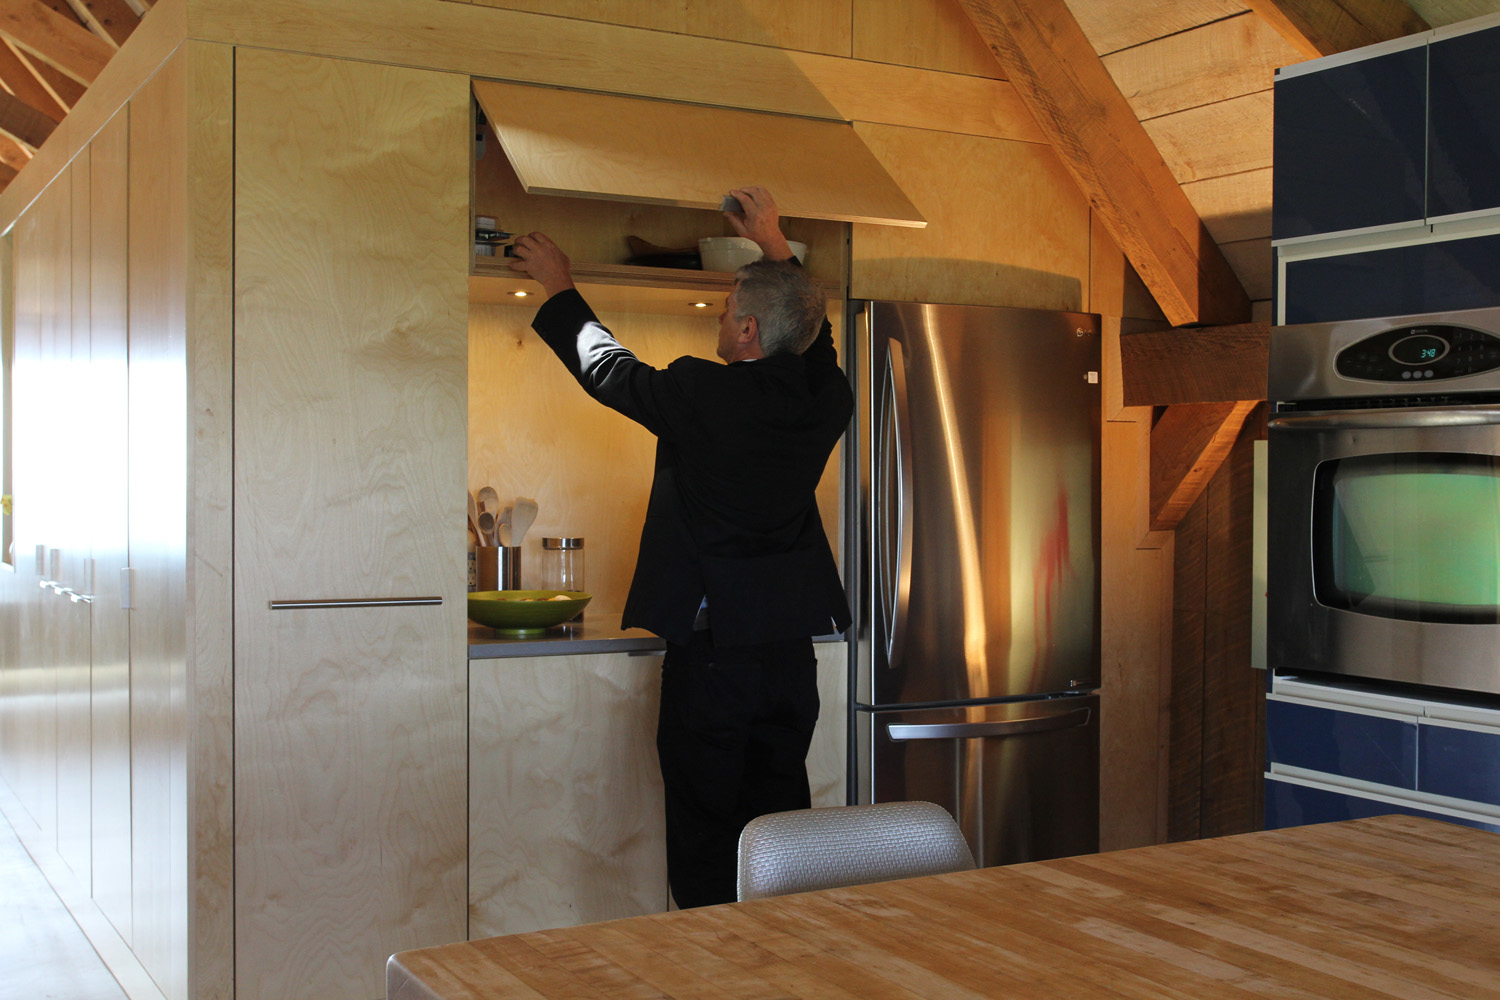 houdinidesign_ARCHITECTS_Ritchie-Gidney_Residence_Sandy-Cove_Digby_Acadian+Timber_Frame_Modern_Renovation_Kitchen_Nook_04.jpg